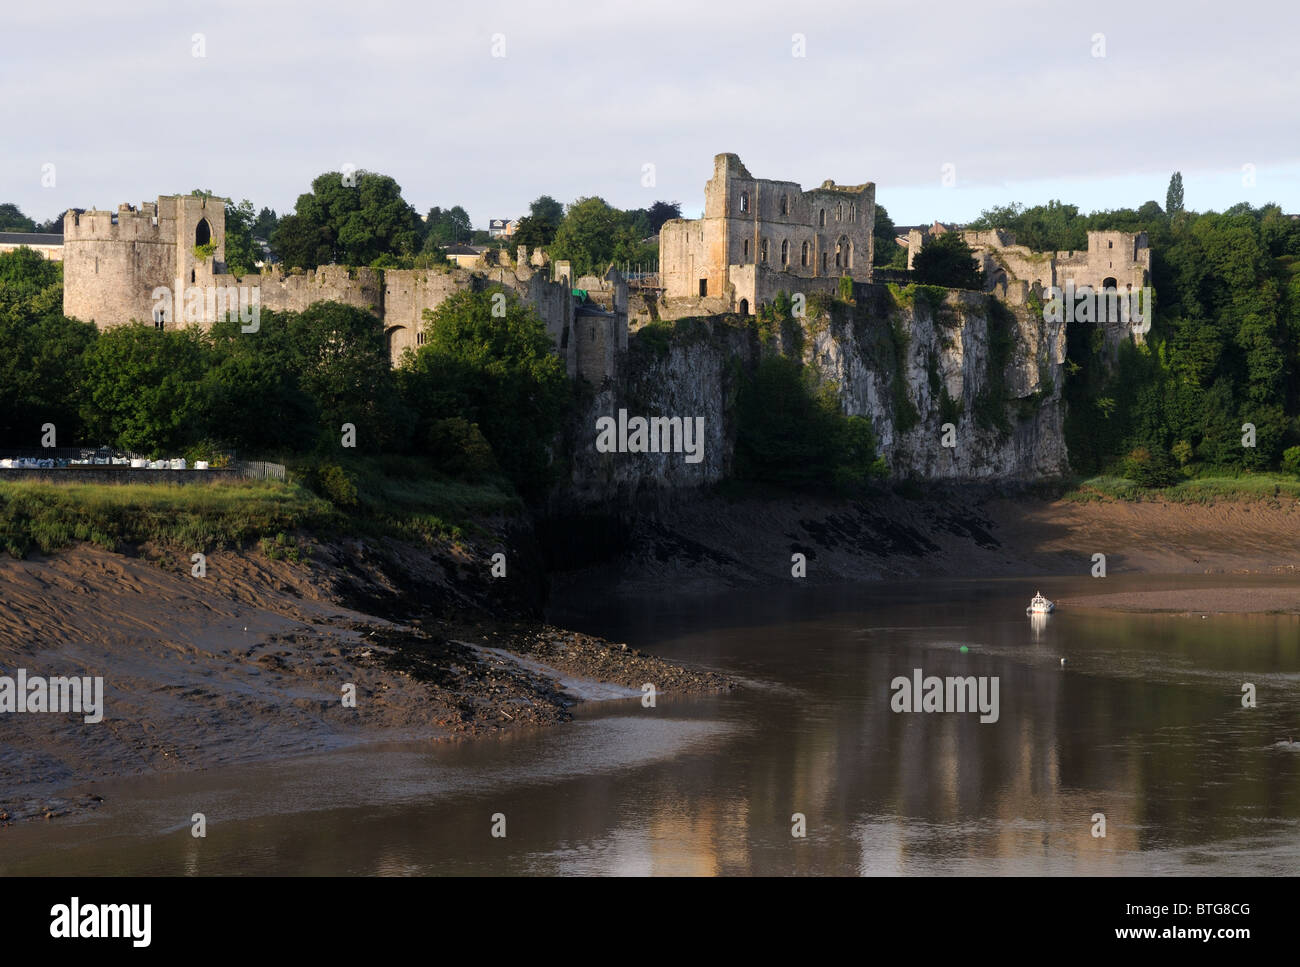 Chepstow Castle and the River Wye, in Chepstow, Monmouthshire, Wales - Stock Image